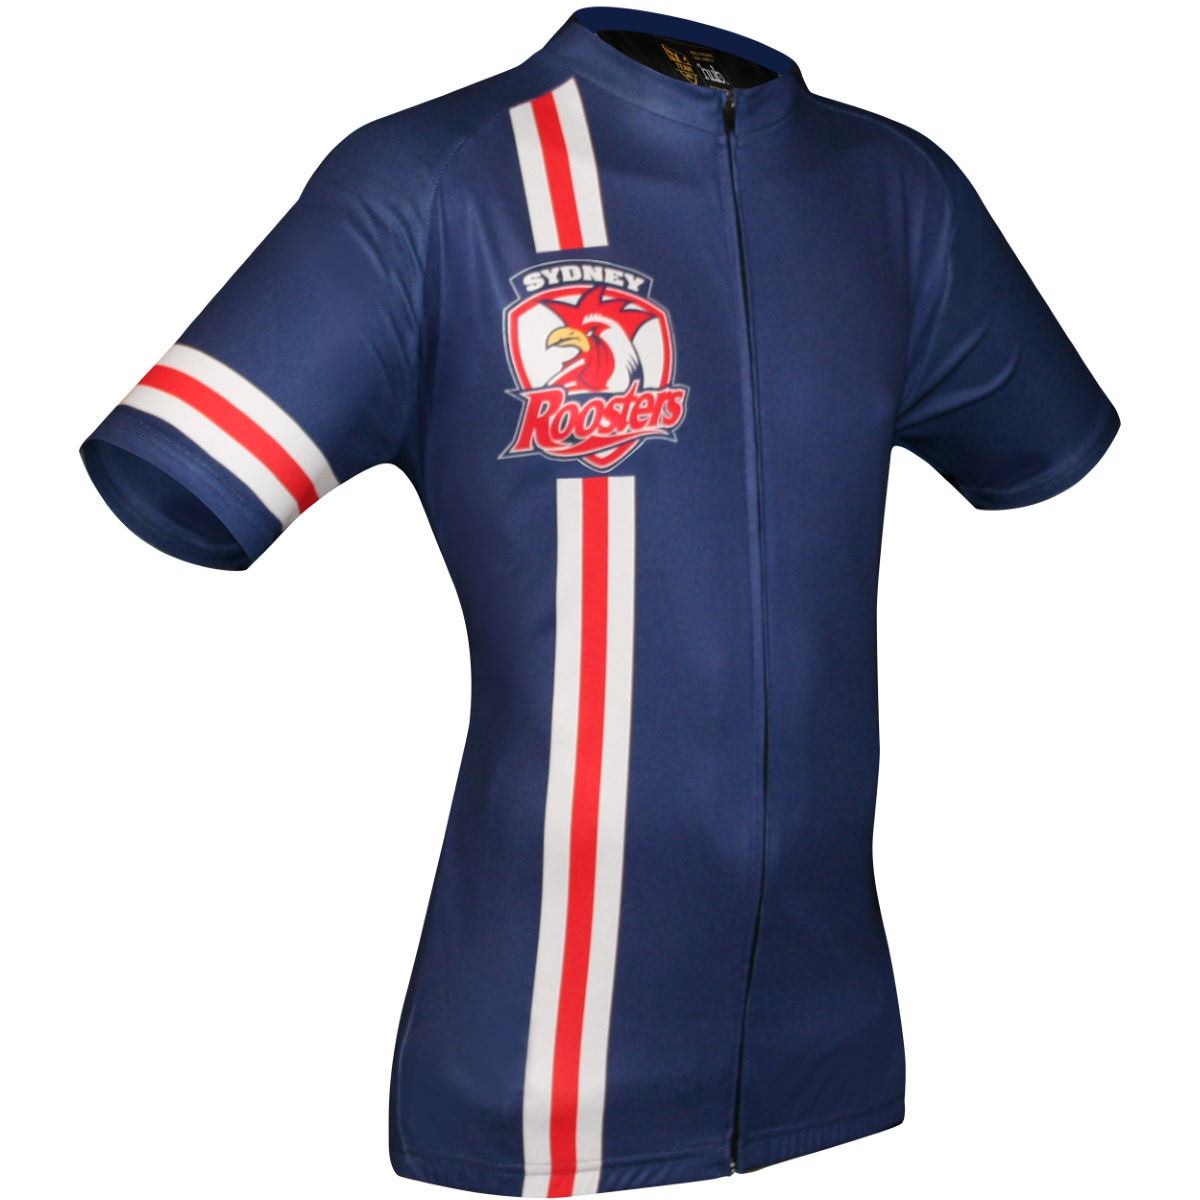 HUB Apparel NRL Licensed Cycling SS Jersey - Sydney Roosters